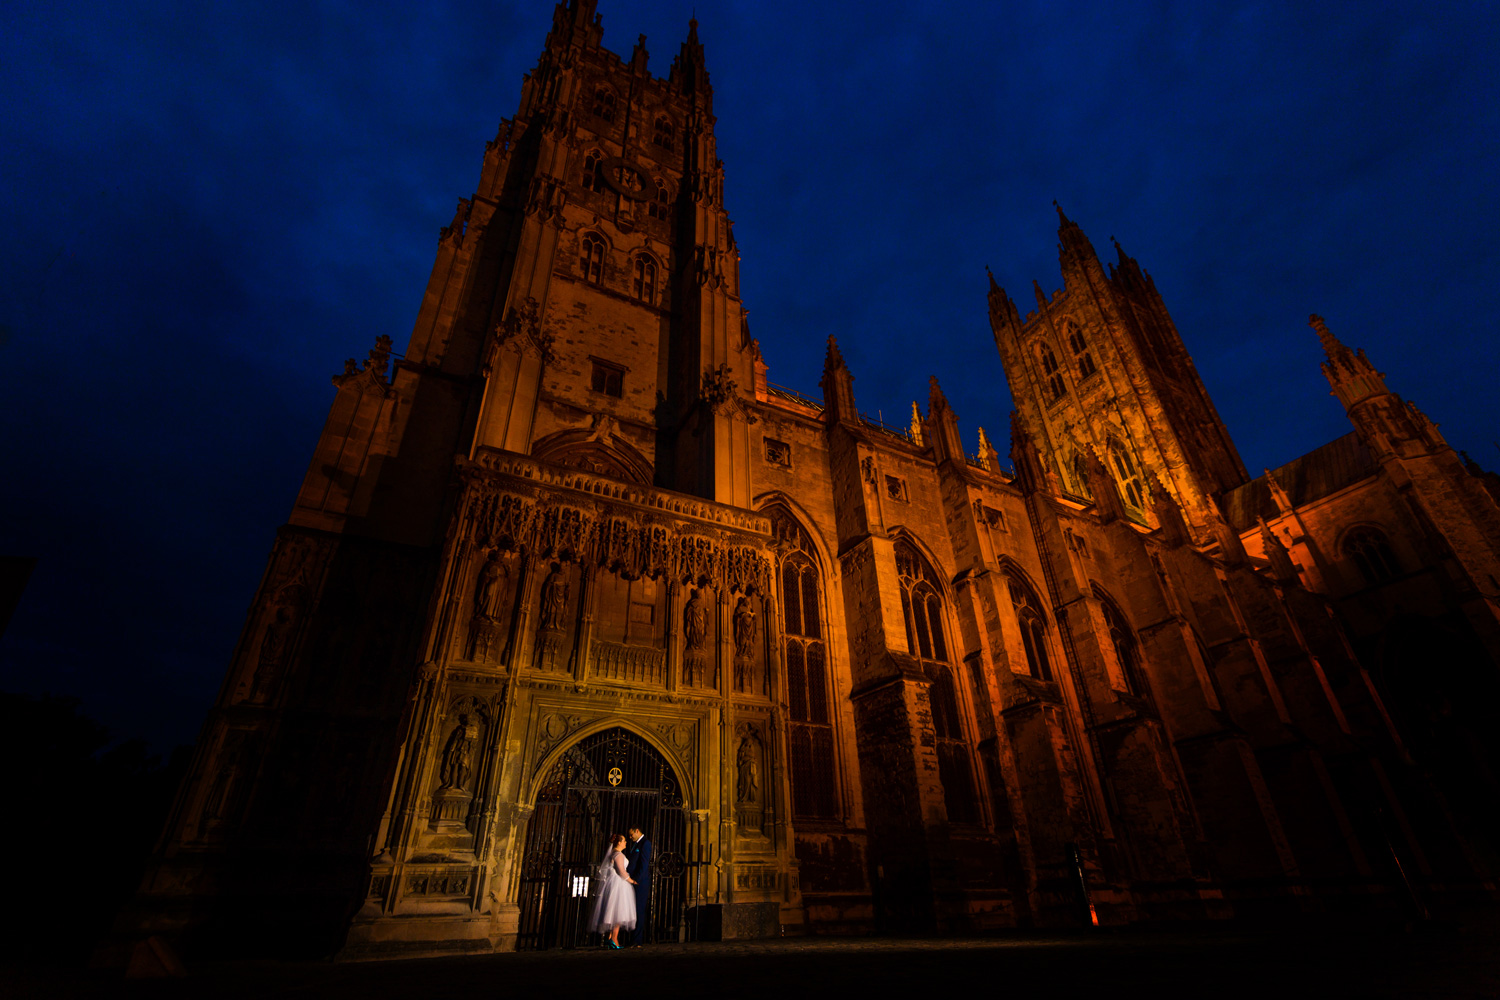 portrait of bride and groom at Canterbury cathedral